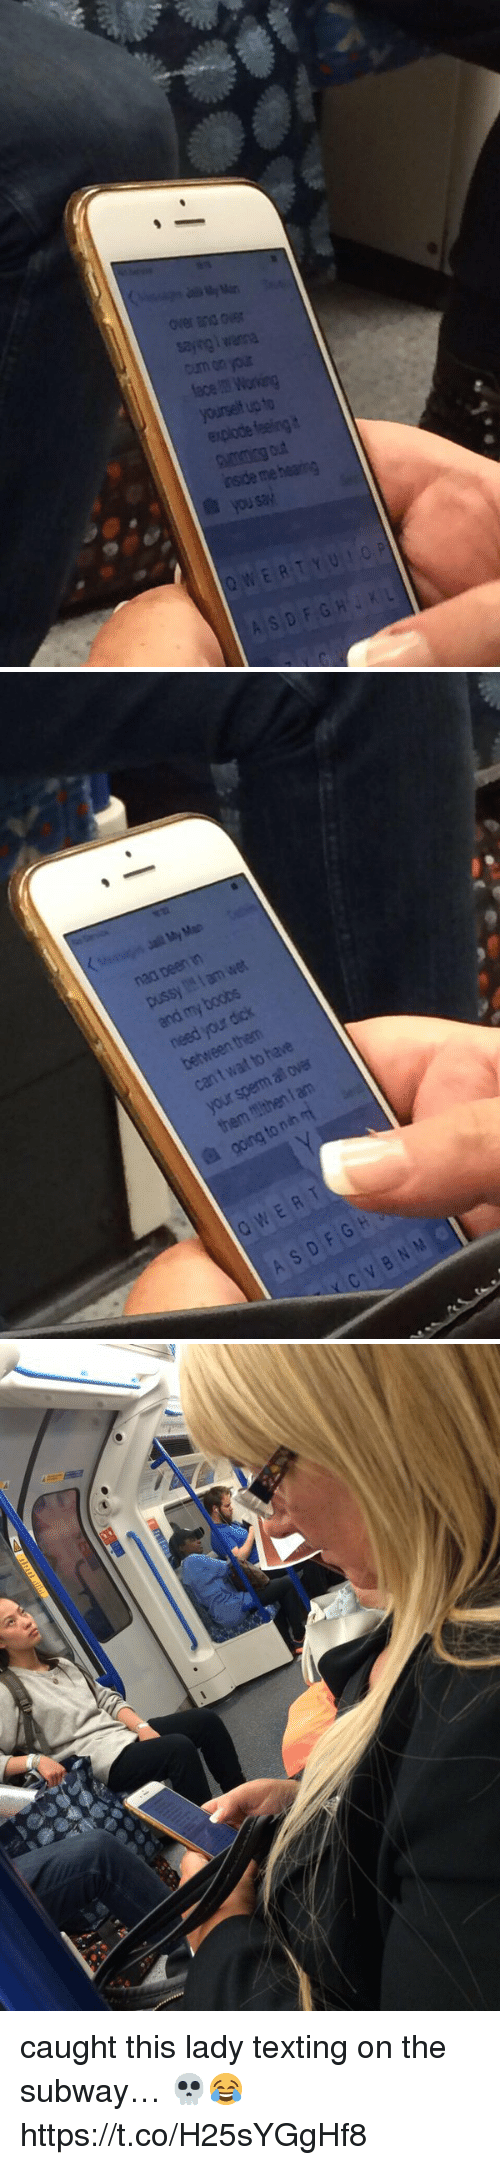 Subway, Texting, and Wat: over wiG Over  lace mWorvan  yorself UDto  explode feeing  nside men  ousav  ASD F,G H' J × L   nad Deen in  we  lam pussy boobs  my dick  and your them  between have  to over  wat sperm your them m  nh to a Q W E R T  H  G F D S A M  N B V C caught this lady texting on the subway… 💀😂 https://t.co/H25sYGgHf8